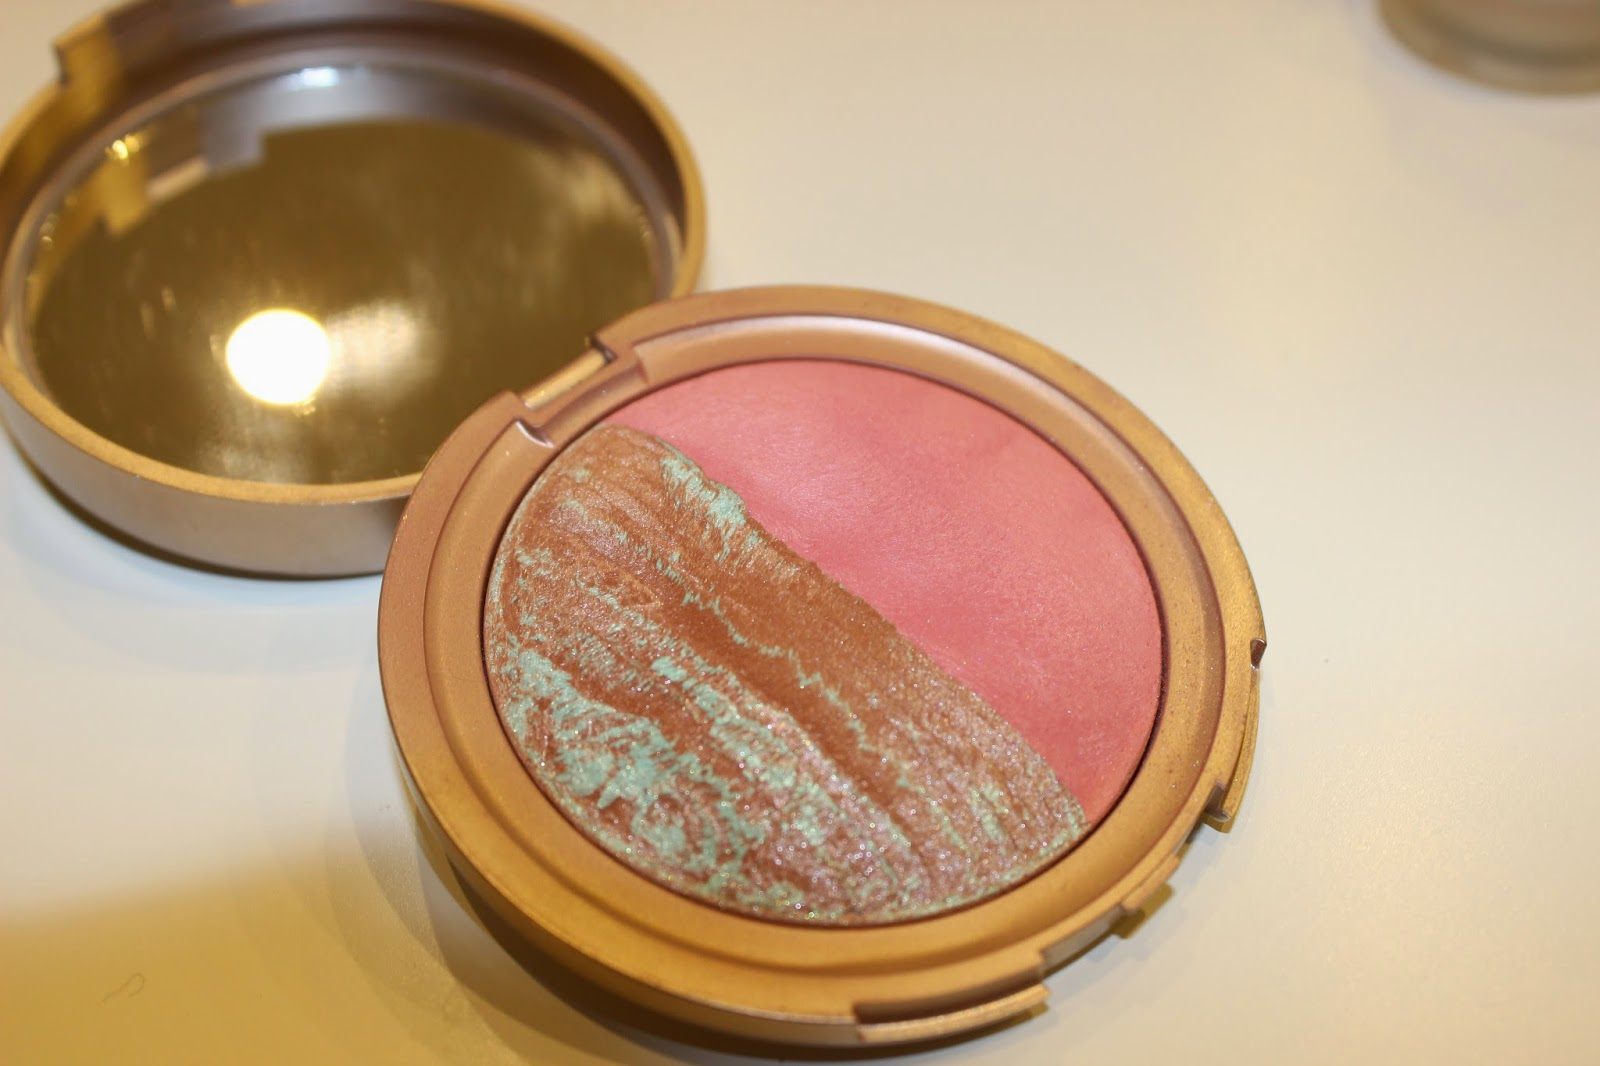 Kiko Sun Lovers Blush in 02 Copacobana Coral